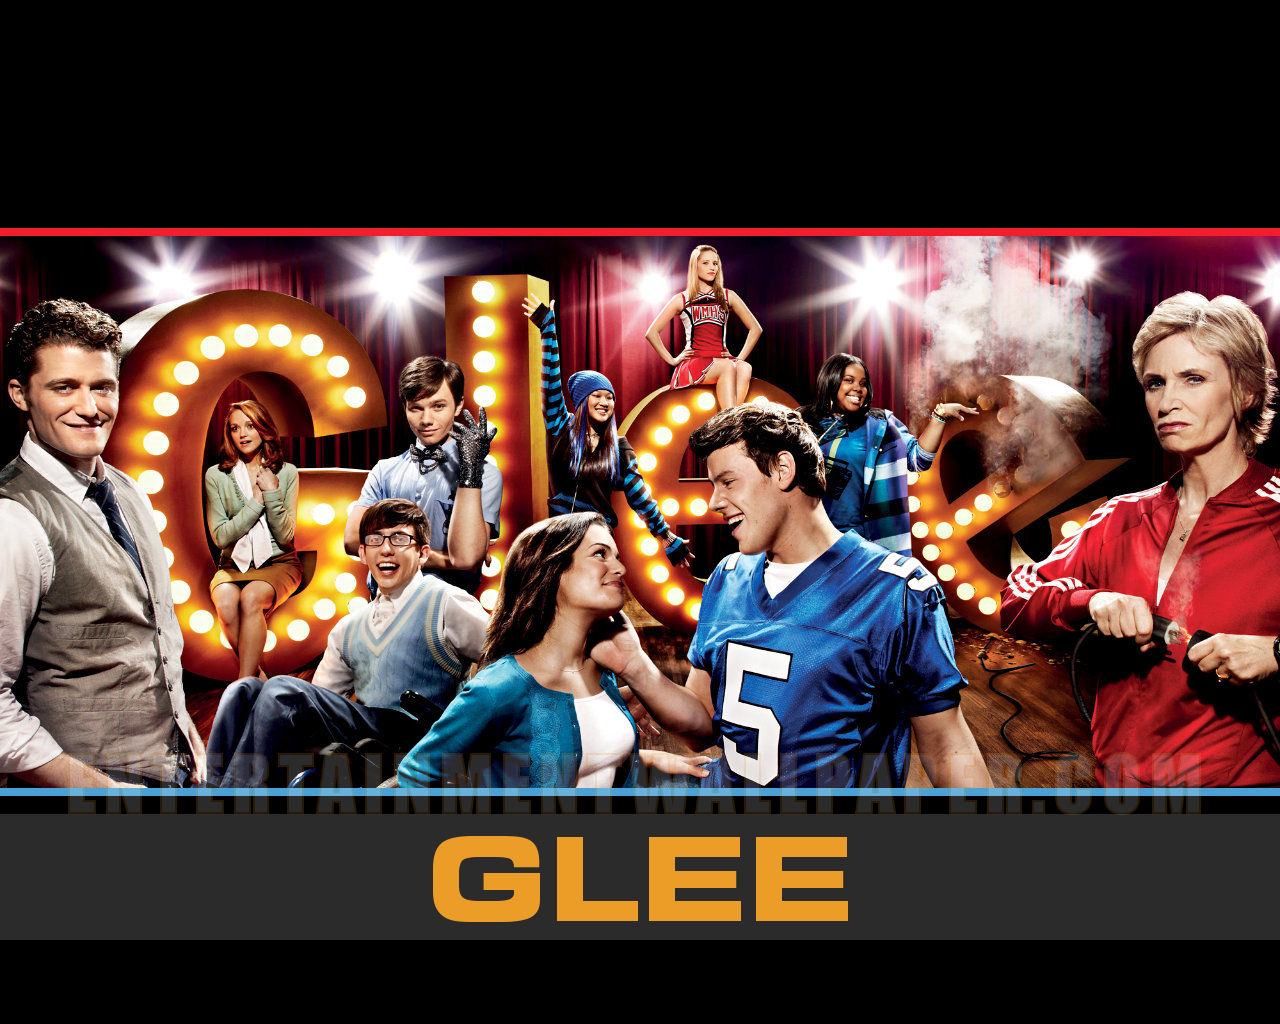 desa picture ckgraphics 9212009 to mac backgrounds glee by wallpapers 1280x1024